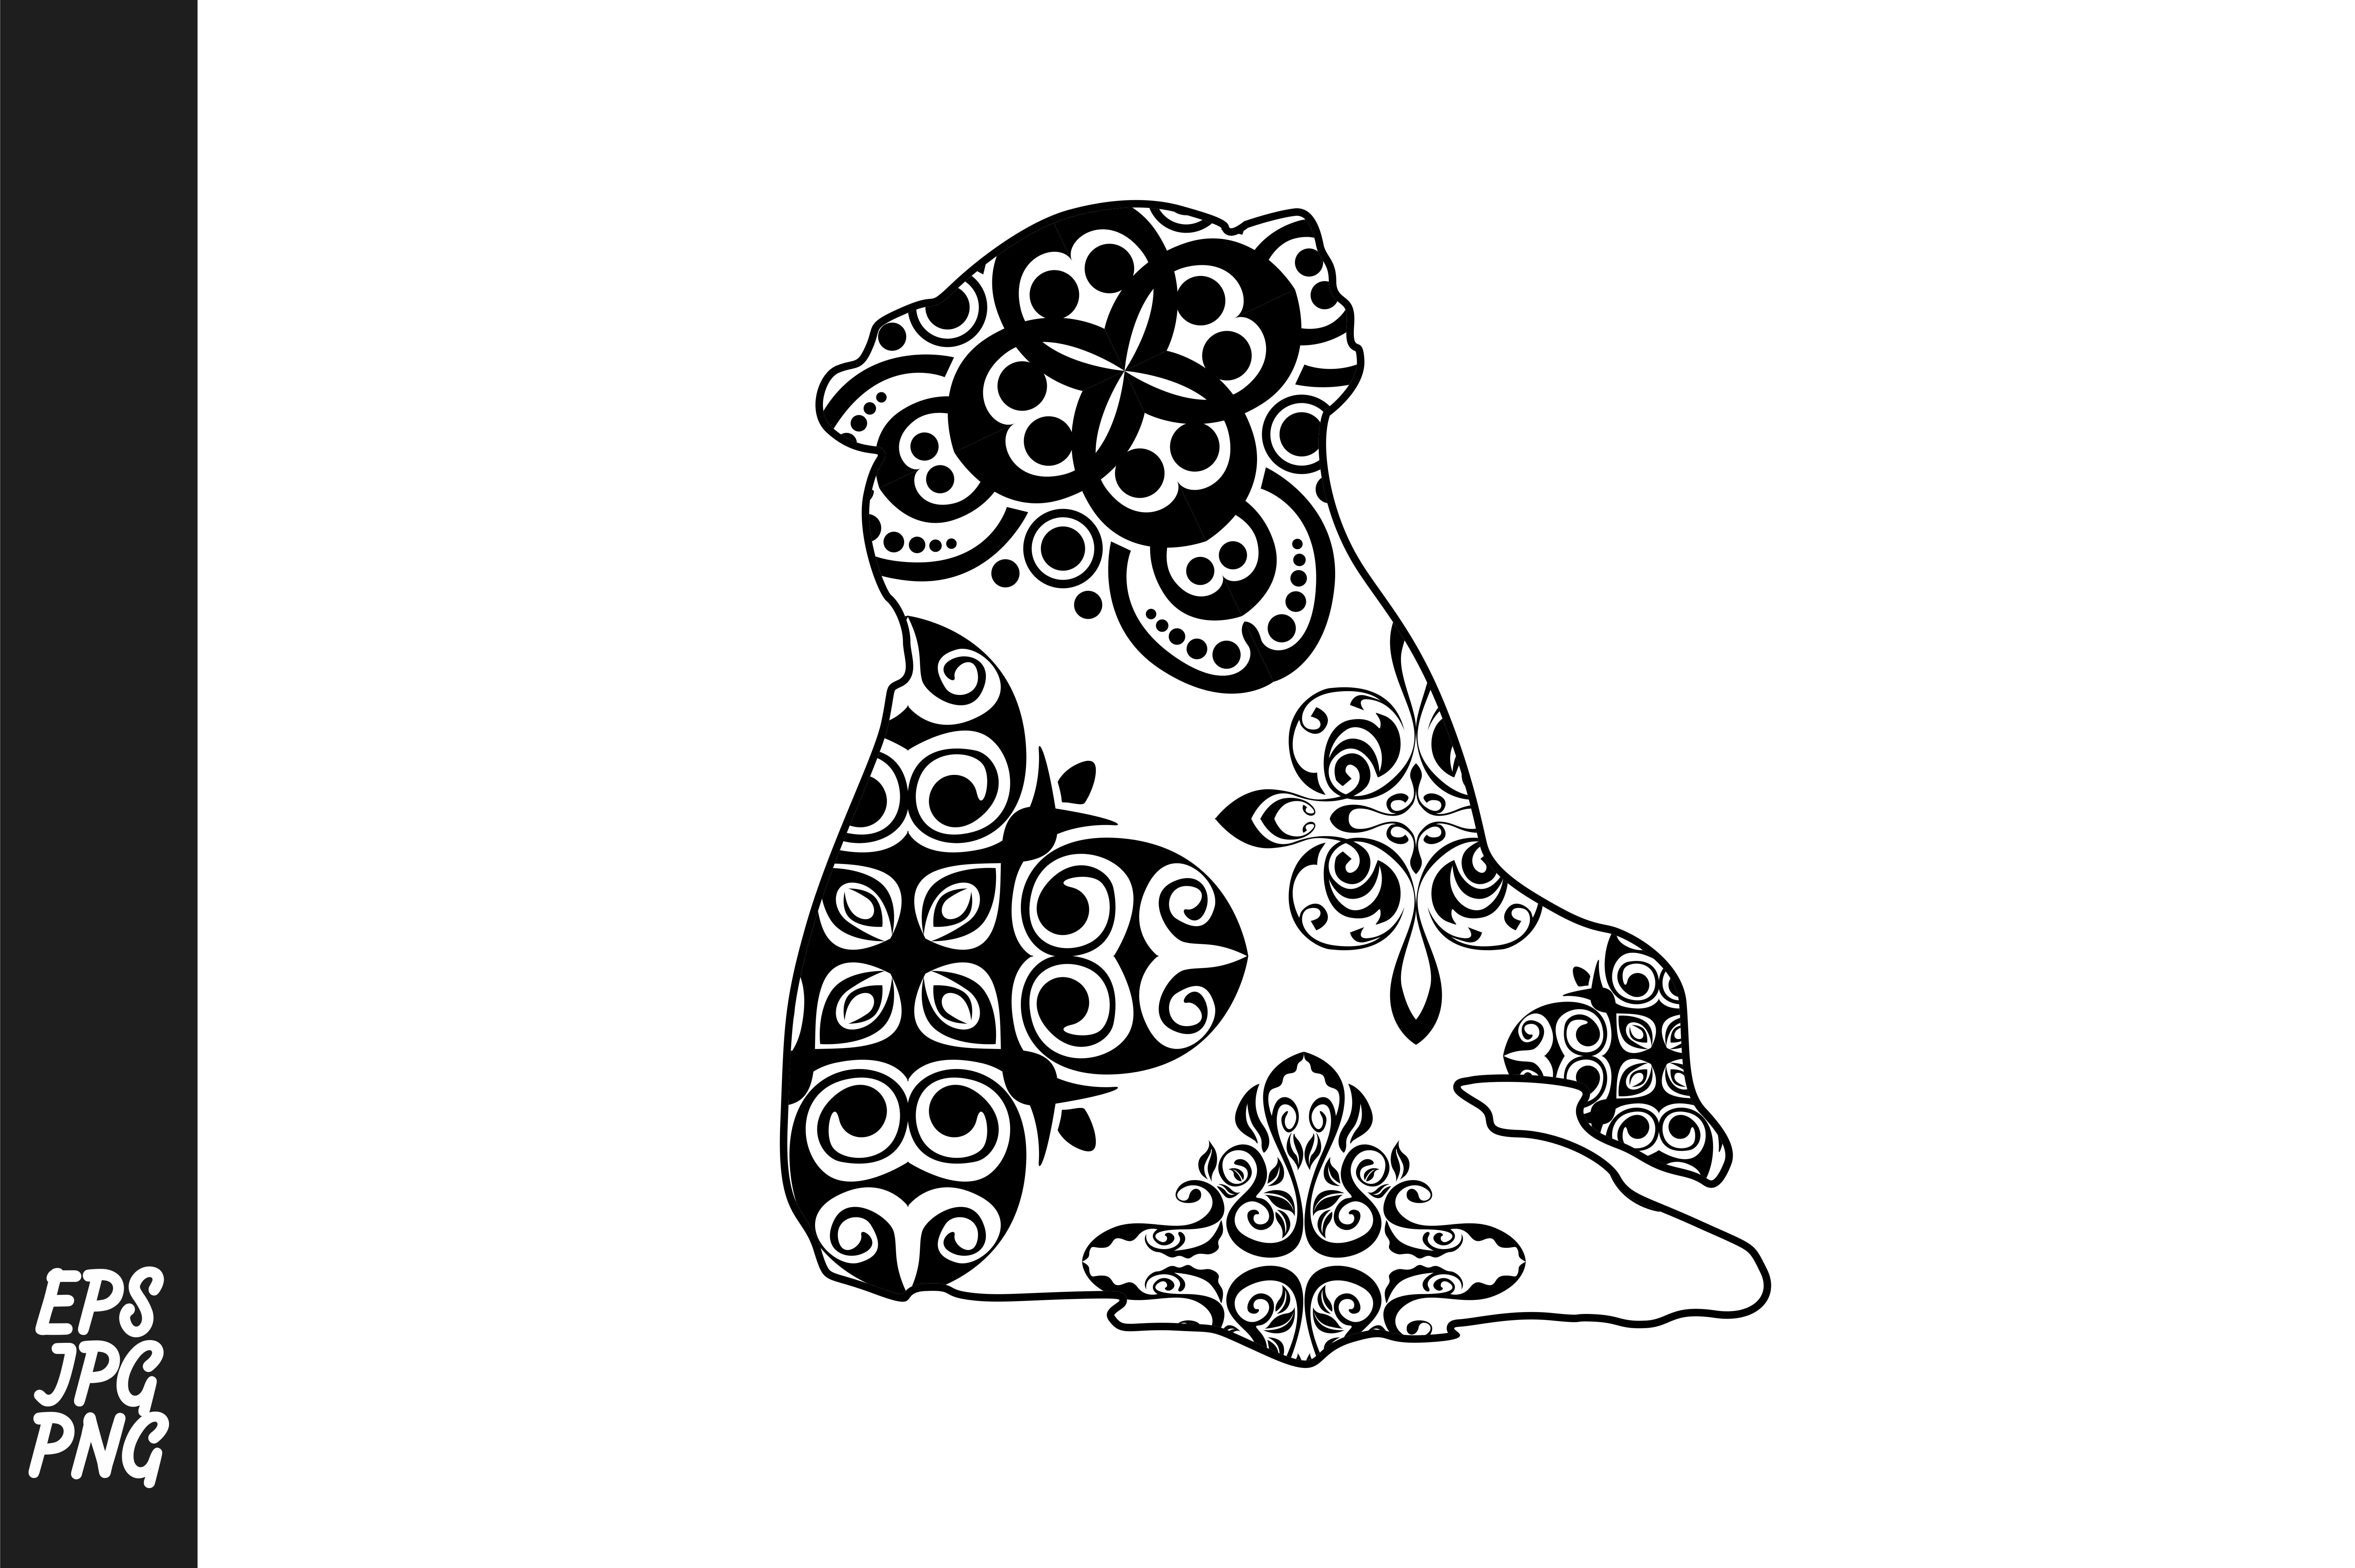 Download Free Bear Mandala Line Art Style Graphic By Arief Sapta Adjie for Cricut Explore, Silhouette and other cutting machines.